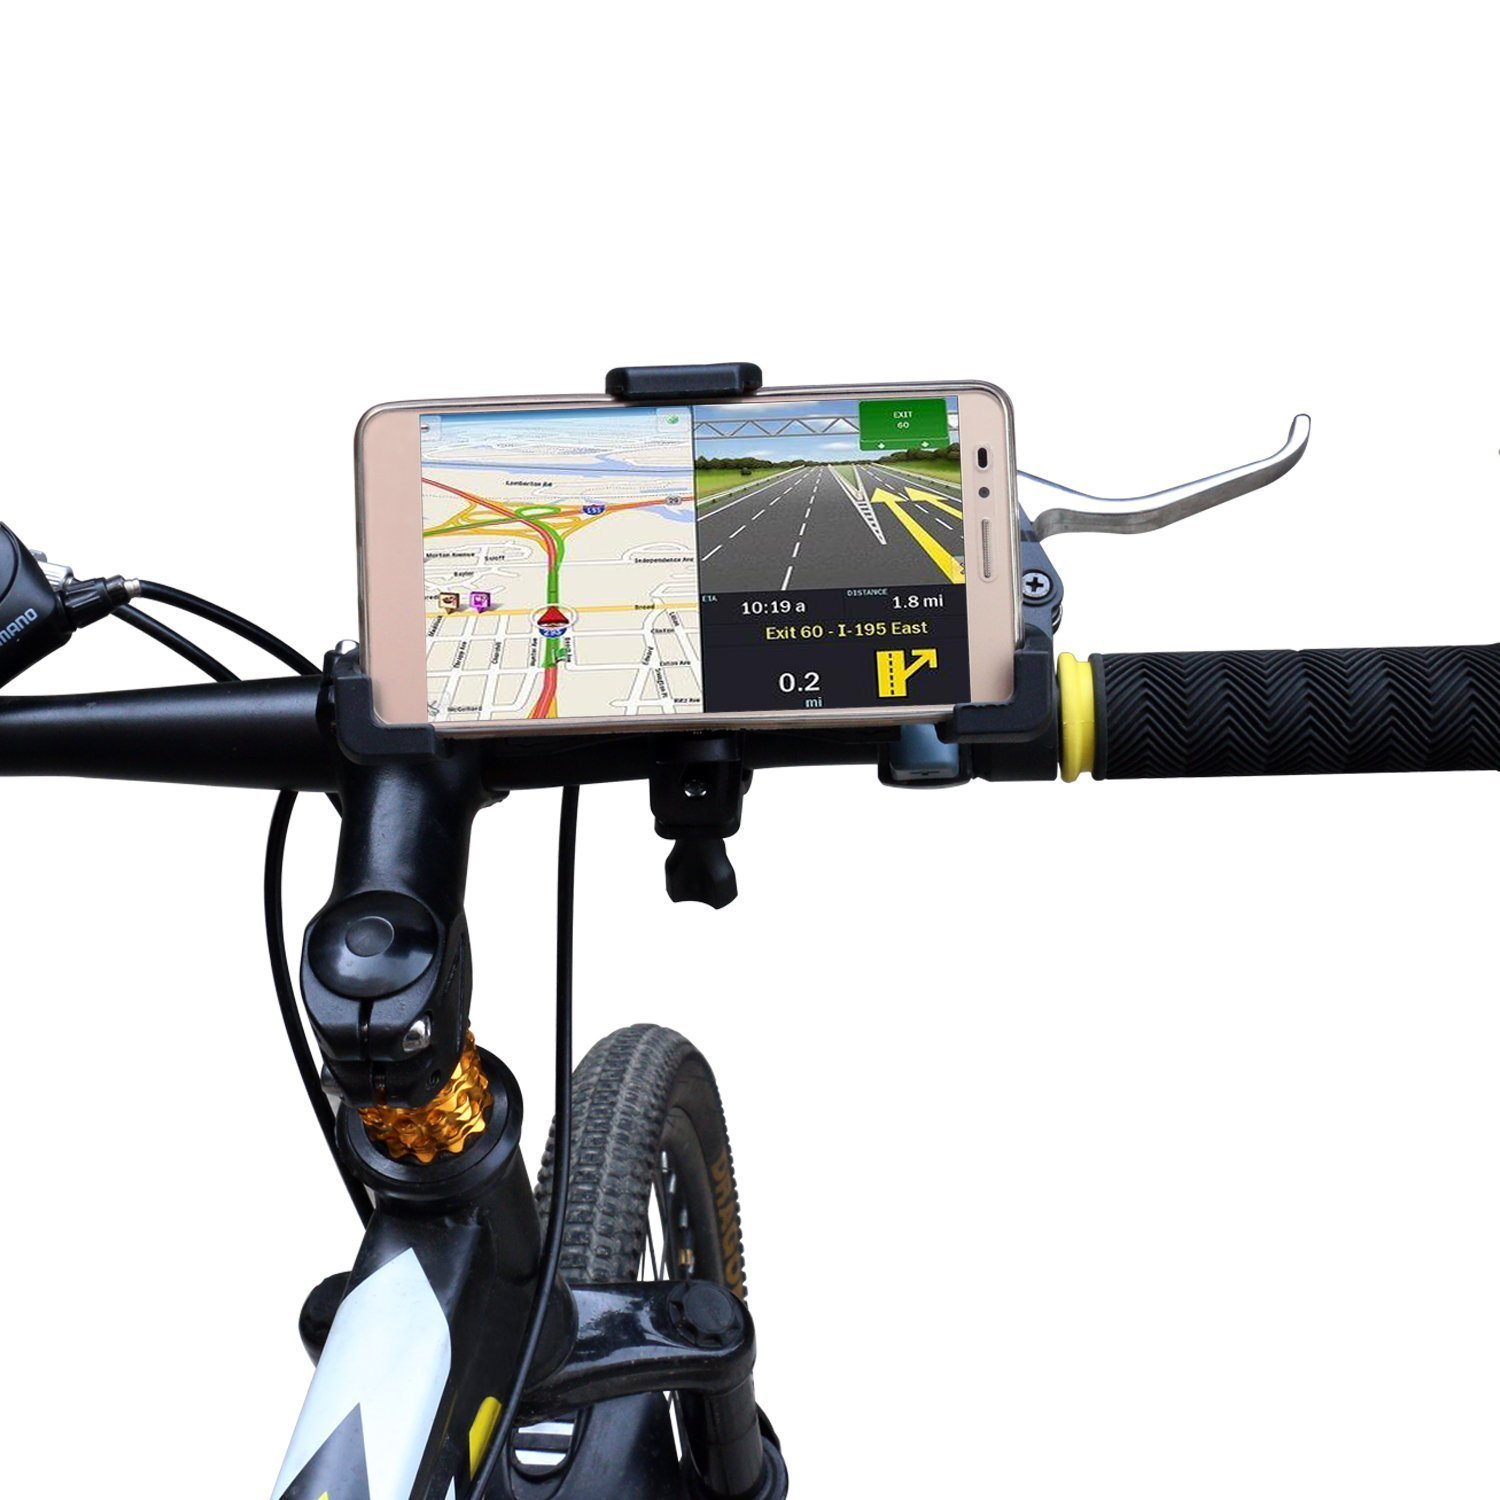 Bike Phone Mount Holder,GULAKI Bicycle Motorcycle Handlebar Mount for iPhone 7 Plus,6S,5S,5C,4S,iPod touch,Galaxy S7,S6,Samsung Note 6/4,Google Nexus 4,GPS,Camera